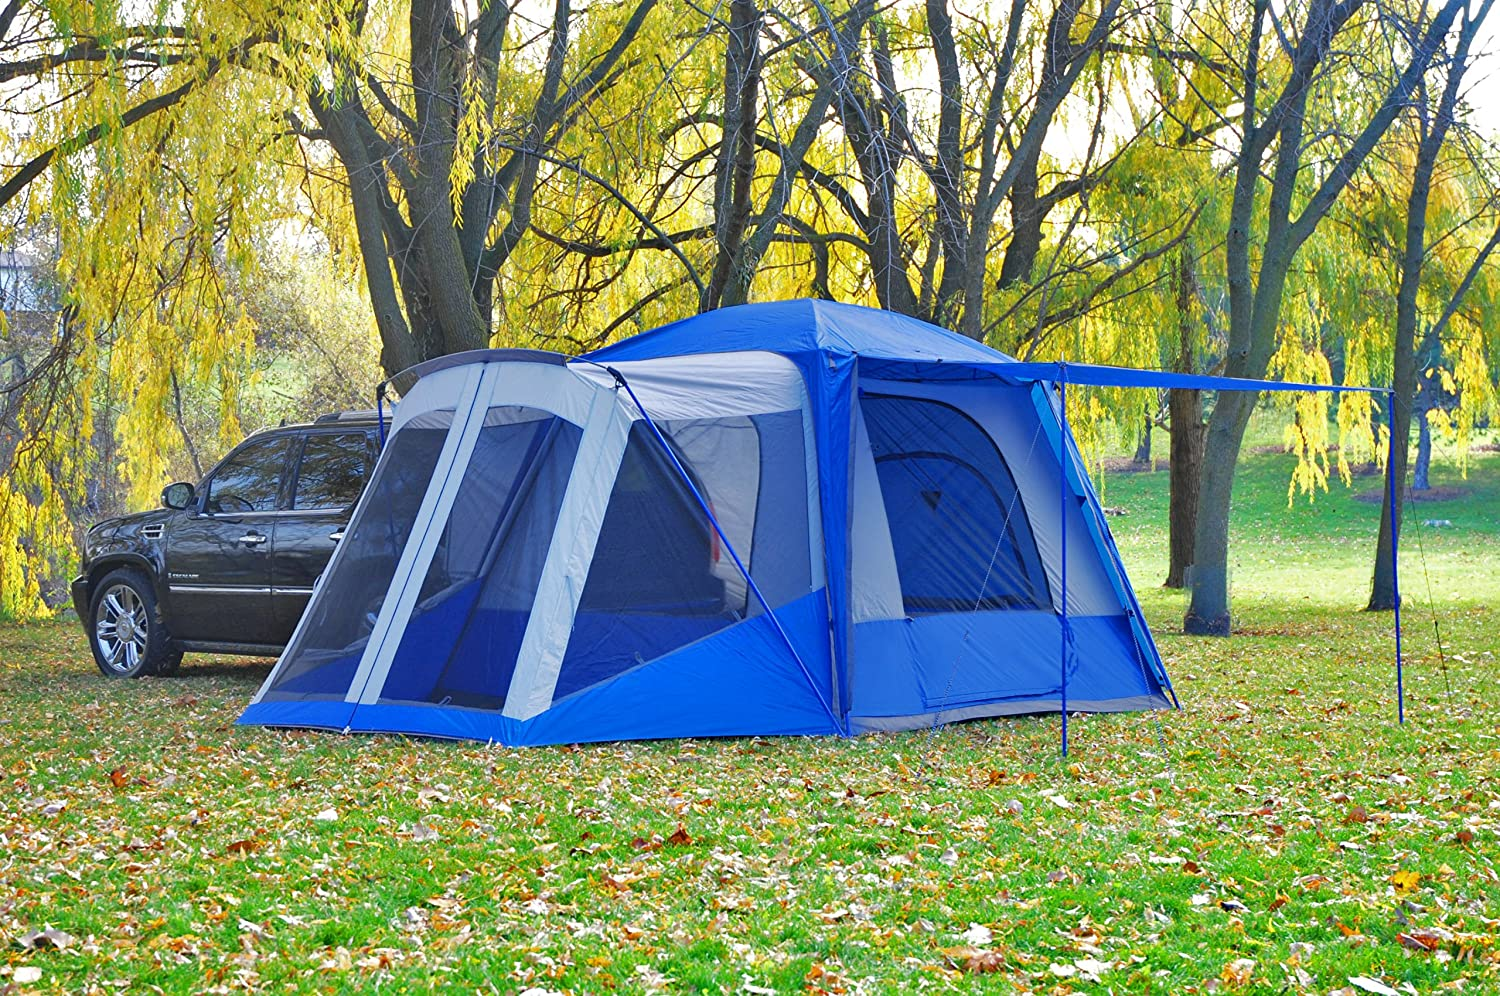 Amazon.com  Sportz SUV Blue/Grey Tent with Screen Room (10 x10 x7.25-Feet)  Family Tents  Sports u0026 Outdoors  sc 1 st  Amazon.com & Amazon.com : Sportz SUV Blue/Grey Tent with Screen Room (10 x10 x7 ...